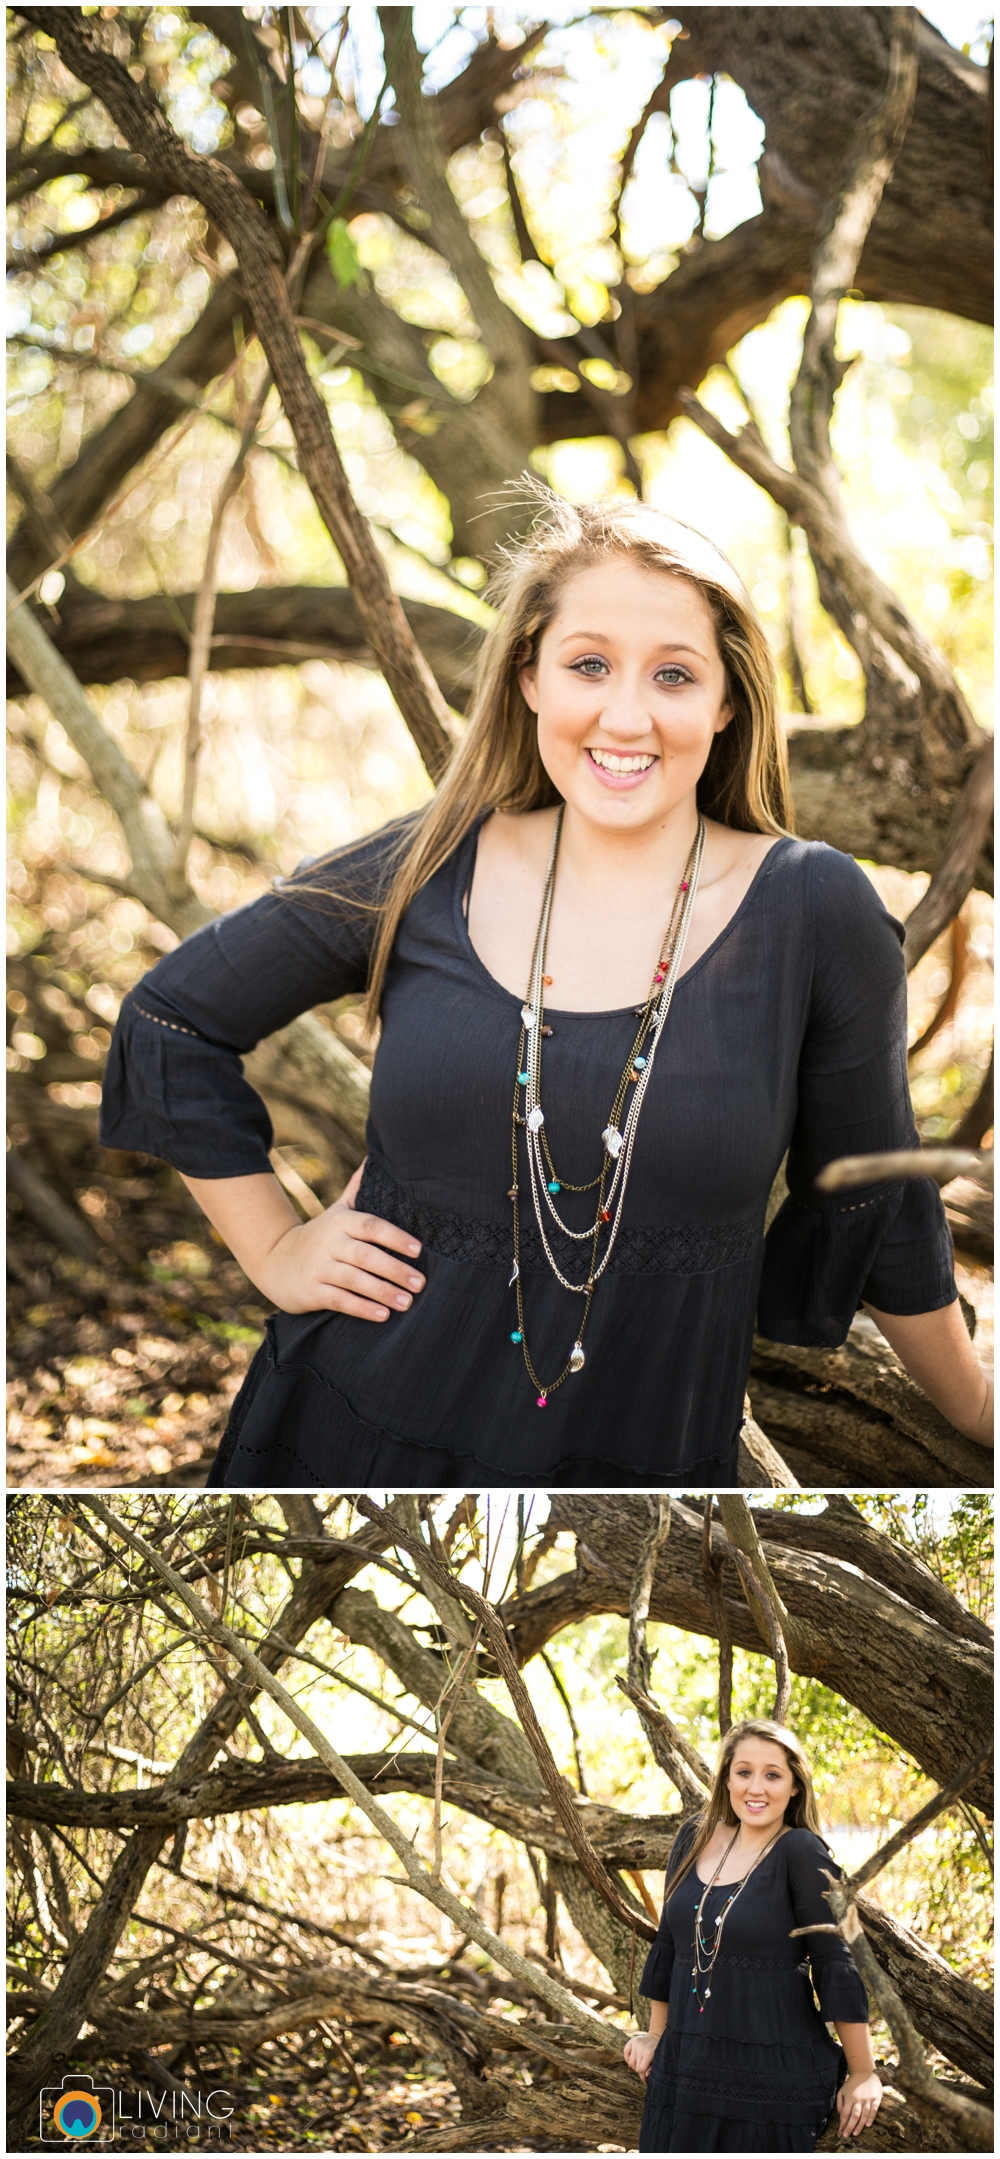 grace-nale-senior-portraits-outdoor-fall-living-radiant-photography-stomped_0006.jpg